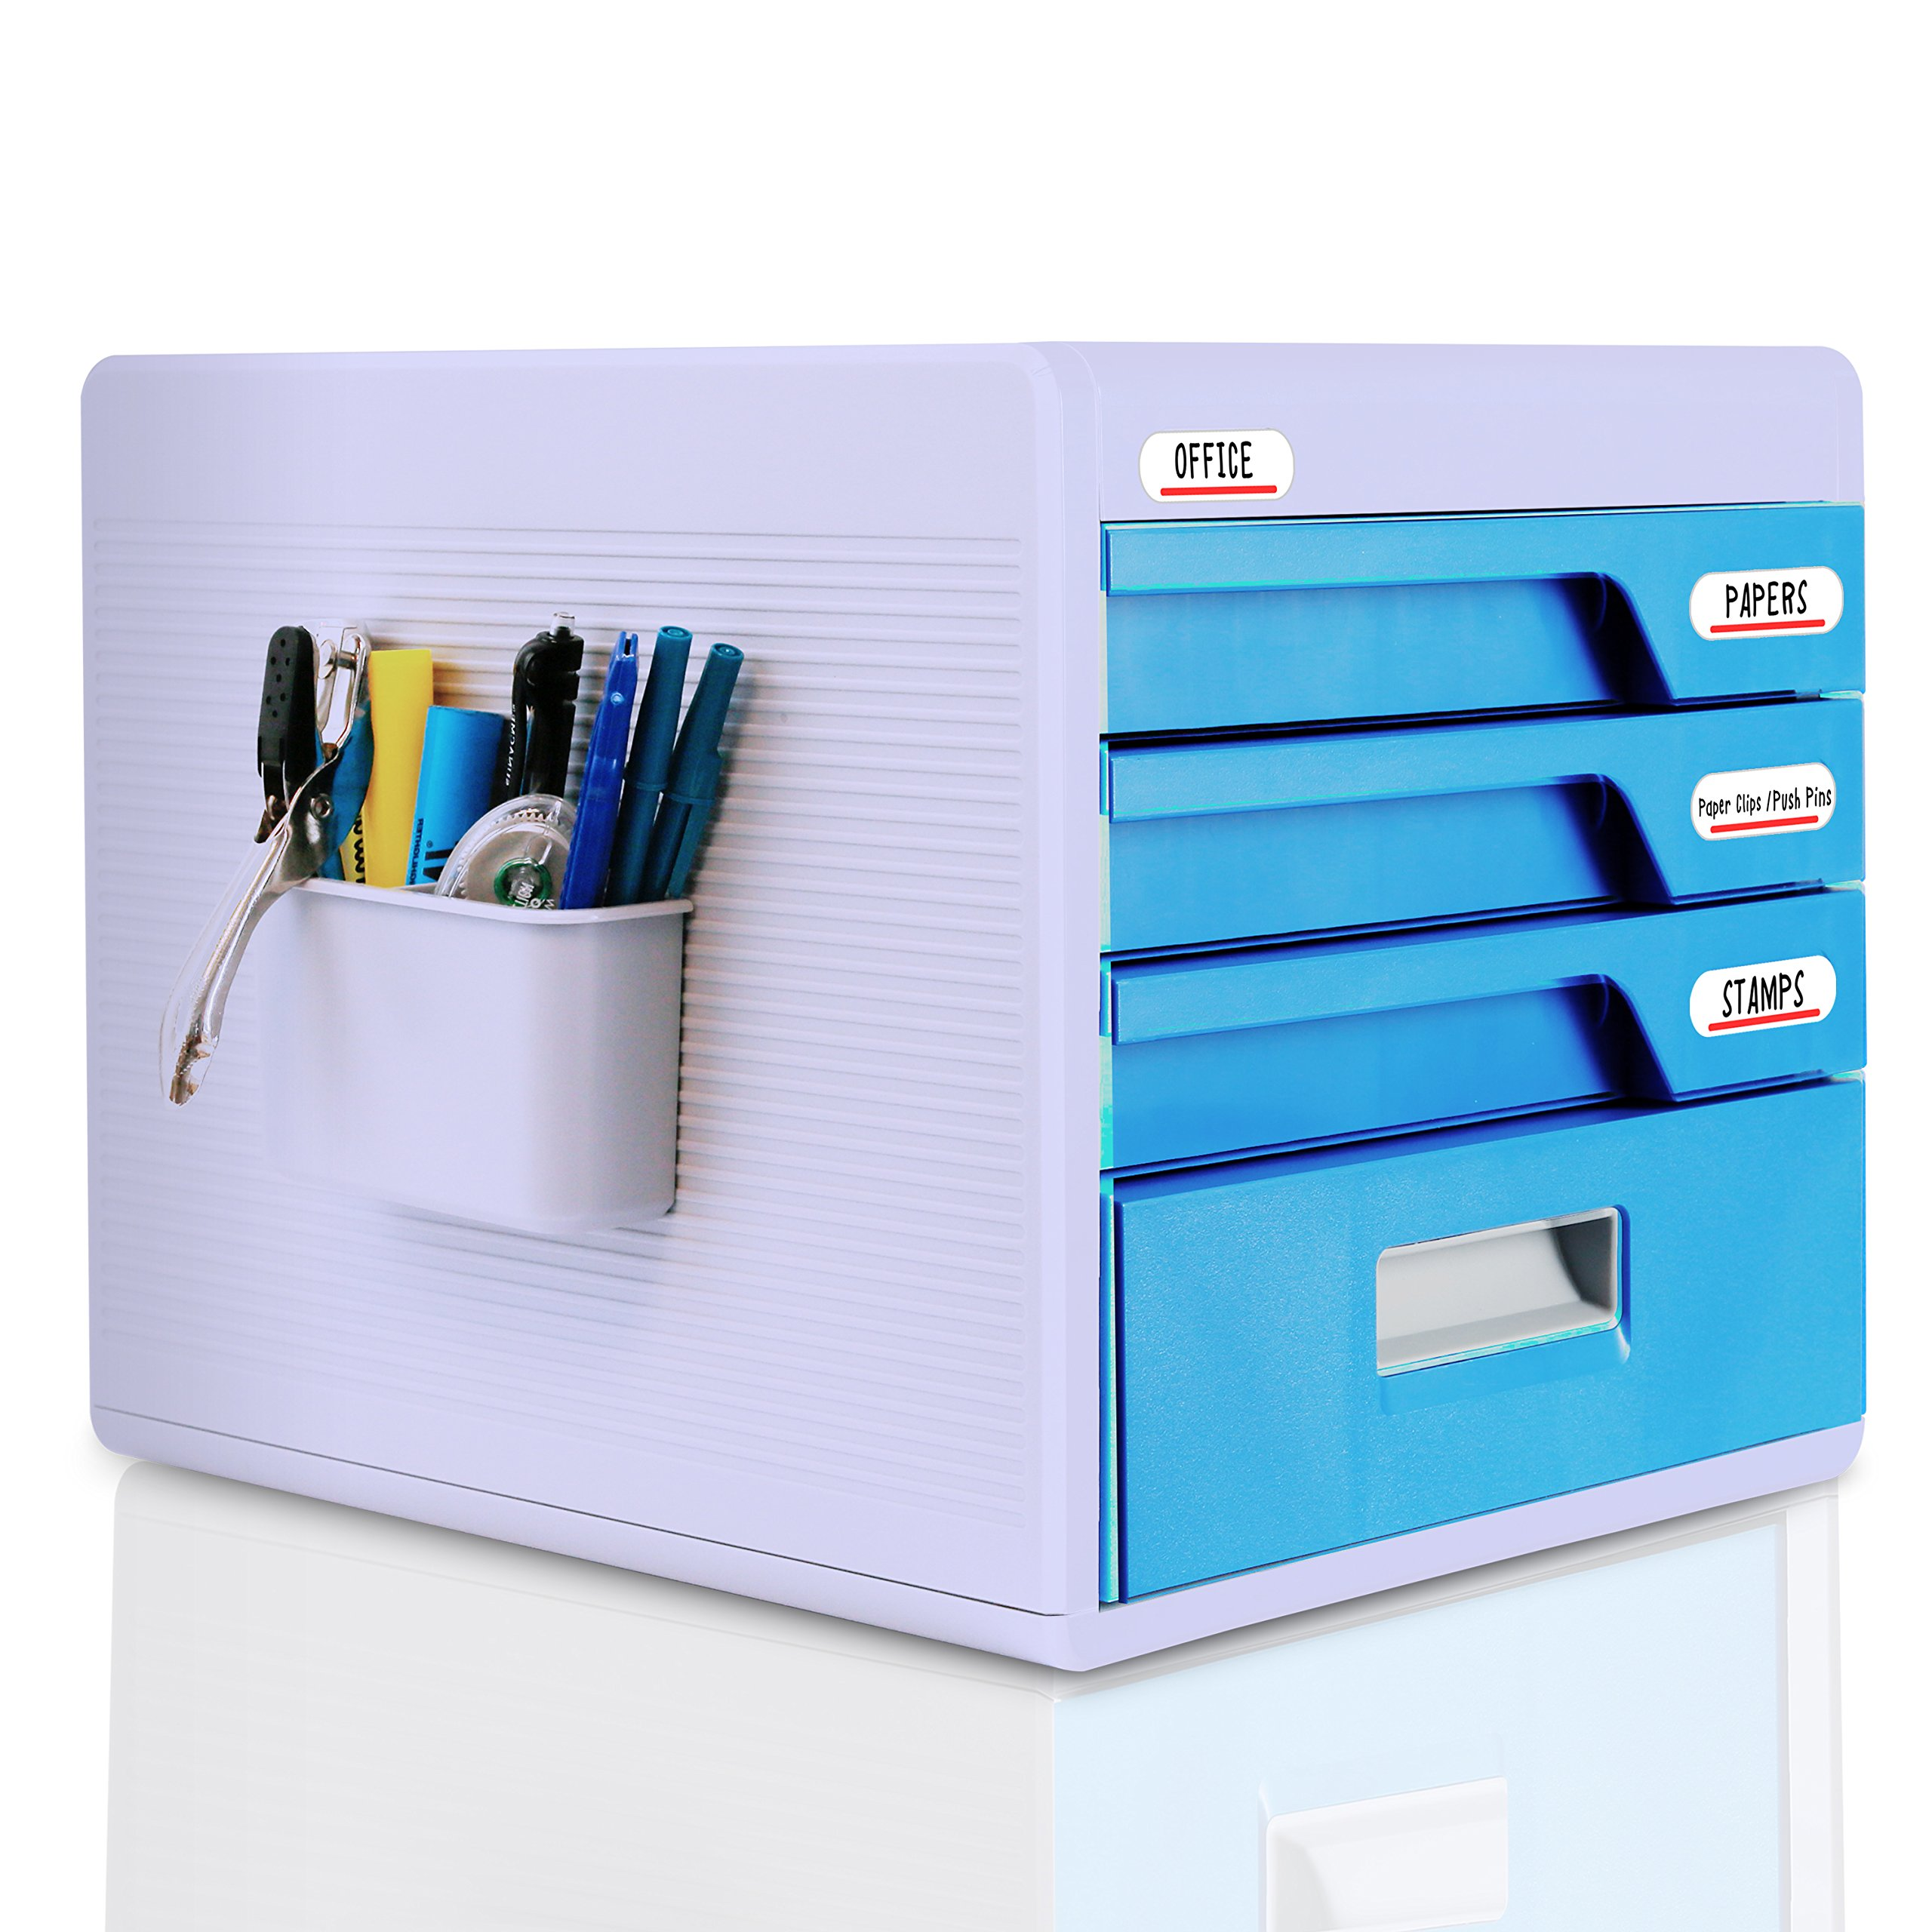 Locking Drawer Cabinet Desk Organizer - Home Office Desktop File Storage Box w/ 4 Lock Drawers, Great for Filing & Organizing Paper Documents, Tools, Kids Craft Supplies - SereneLife SLFCAB20